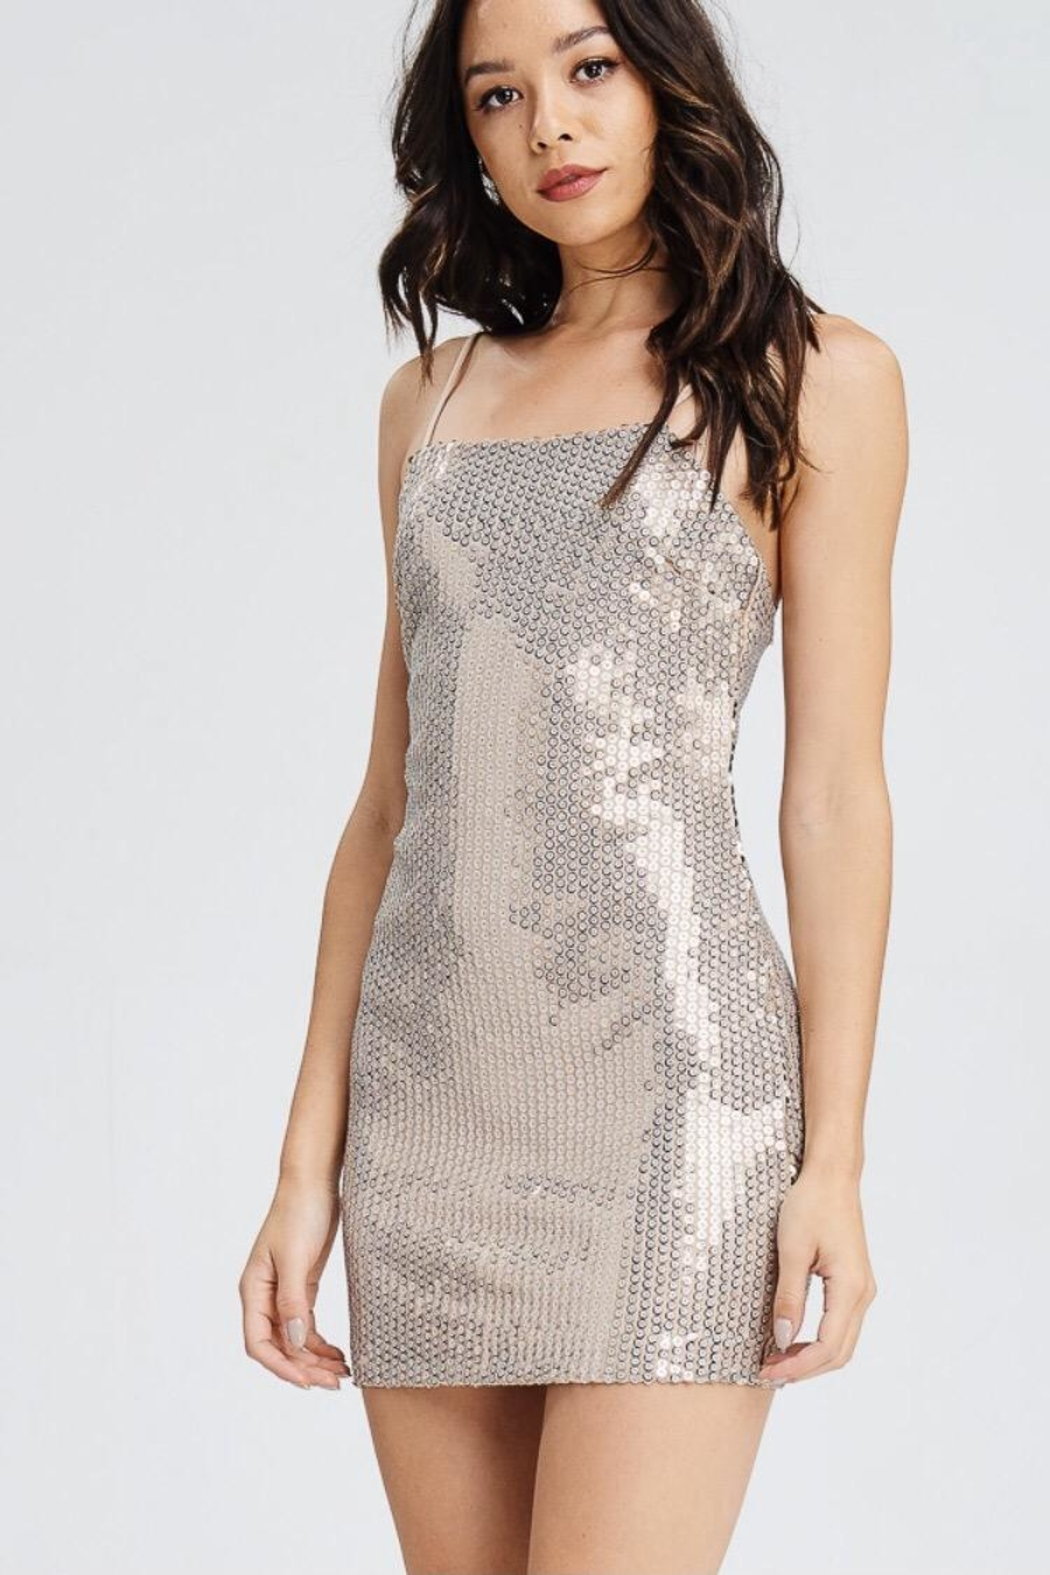 Emory Park Nude Sequin Dress - Main Image